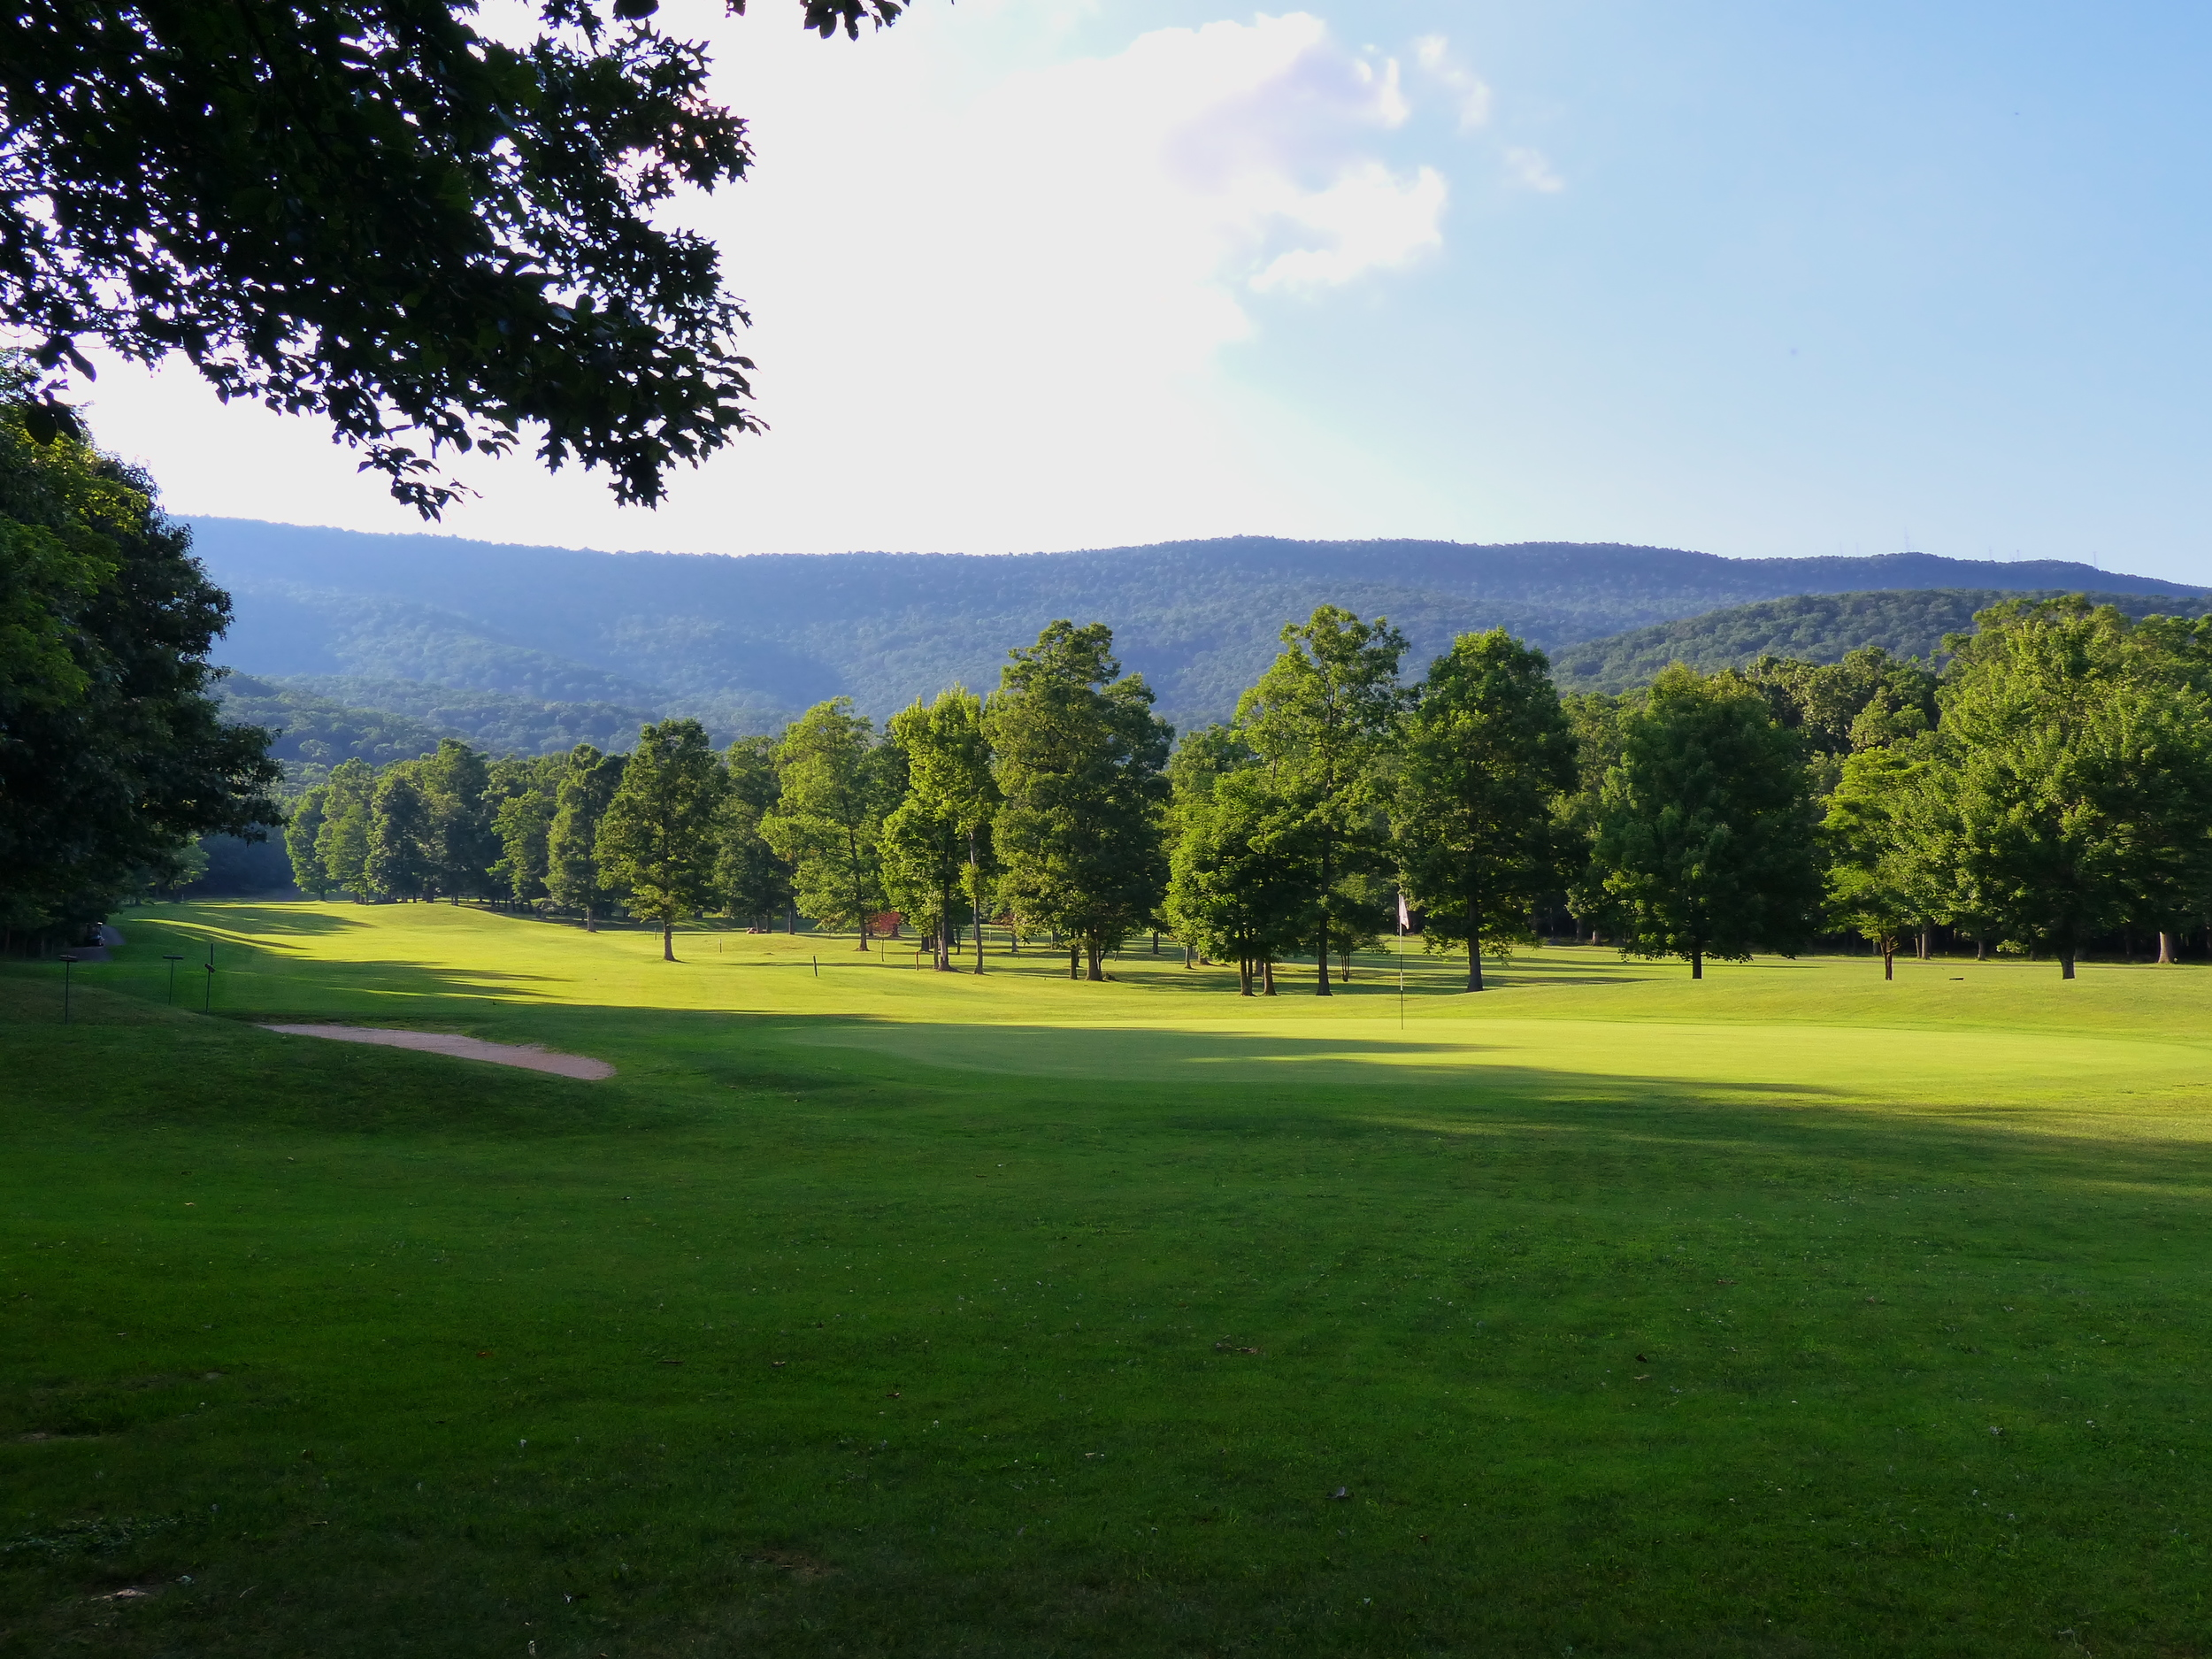 Fore-Sisters-Golf-Course-Rawlings-Teena-Bowers-Photography-1P1210144.jpg